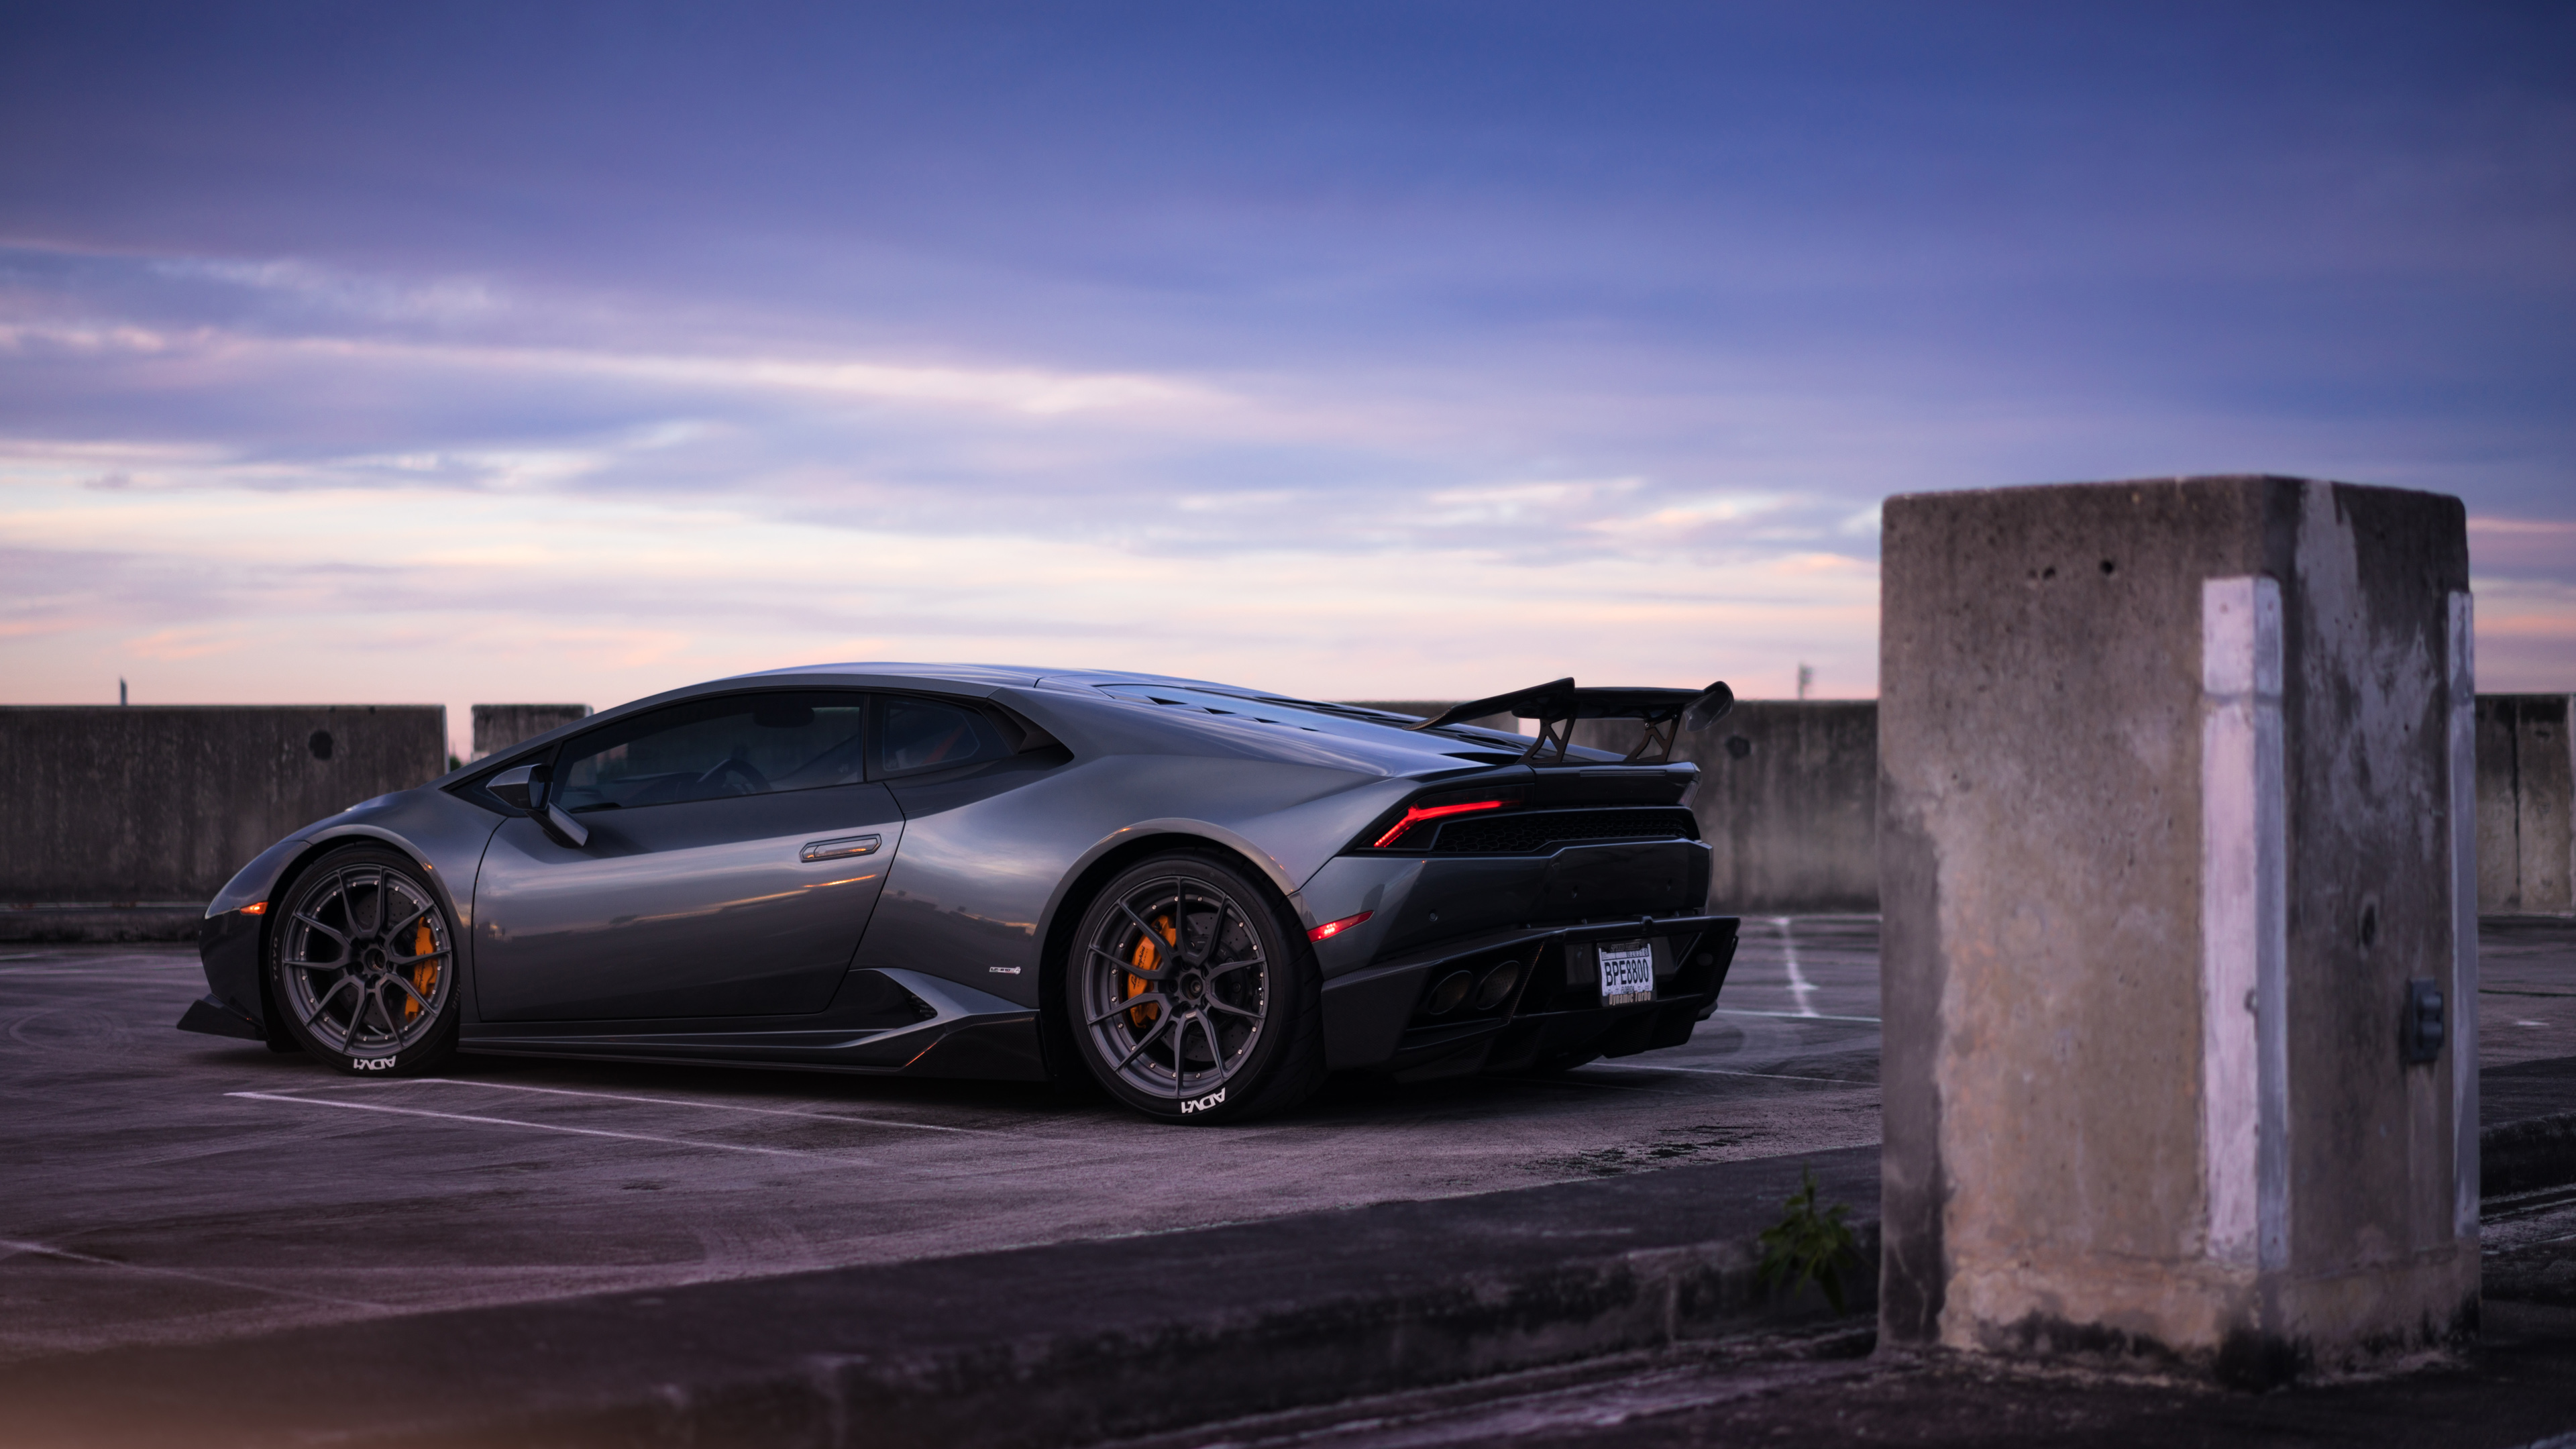 Lamborghini Huracan on ADV1 wheels Wallpaper HD Car Wallpapers